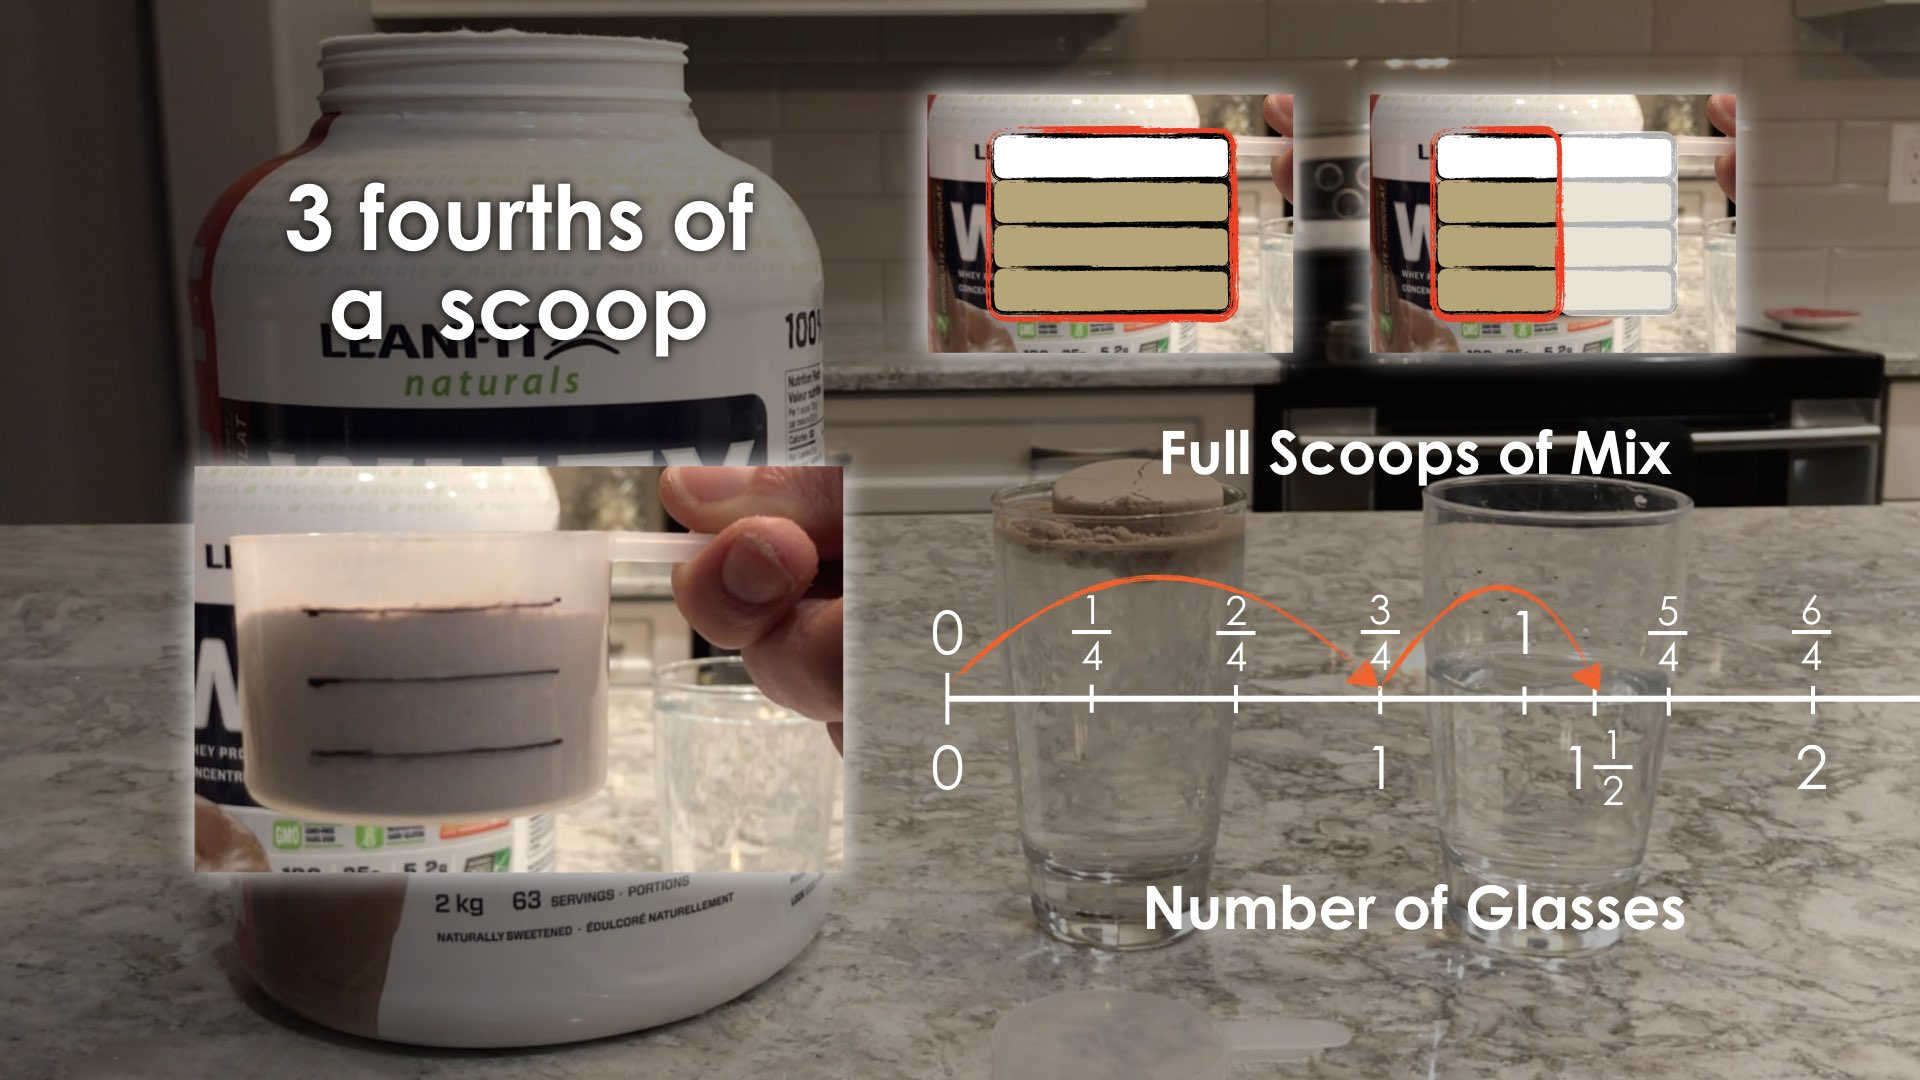 Protein Shakes 3 Act Math Task Extend 1 - Fuel Sense-Making Double Number Line 1